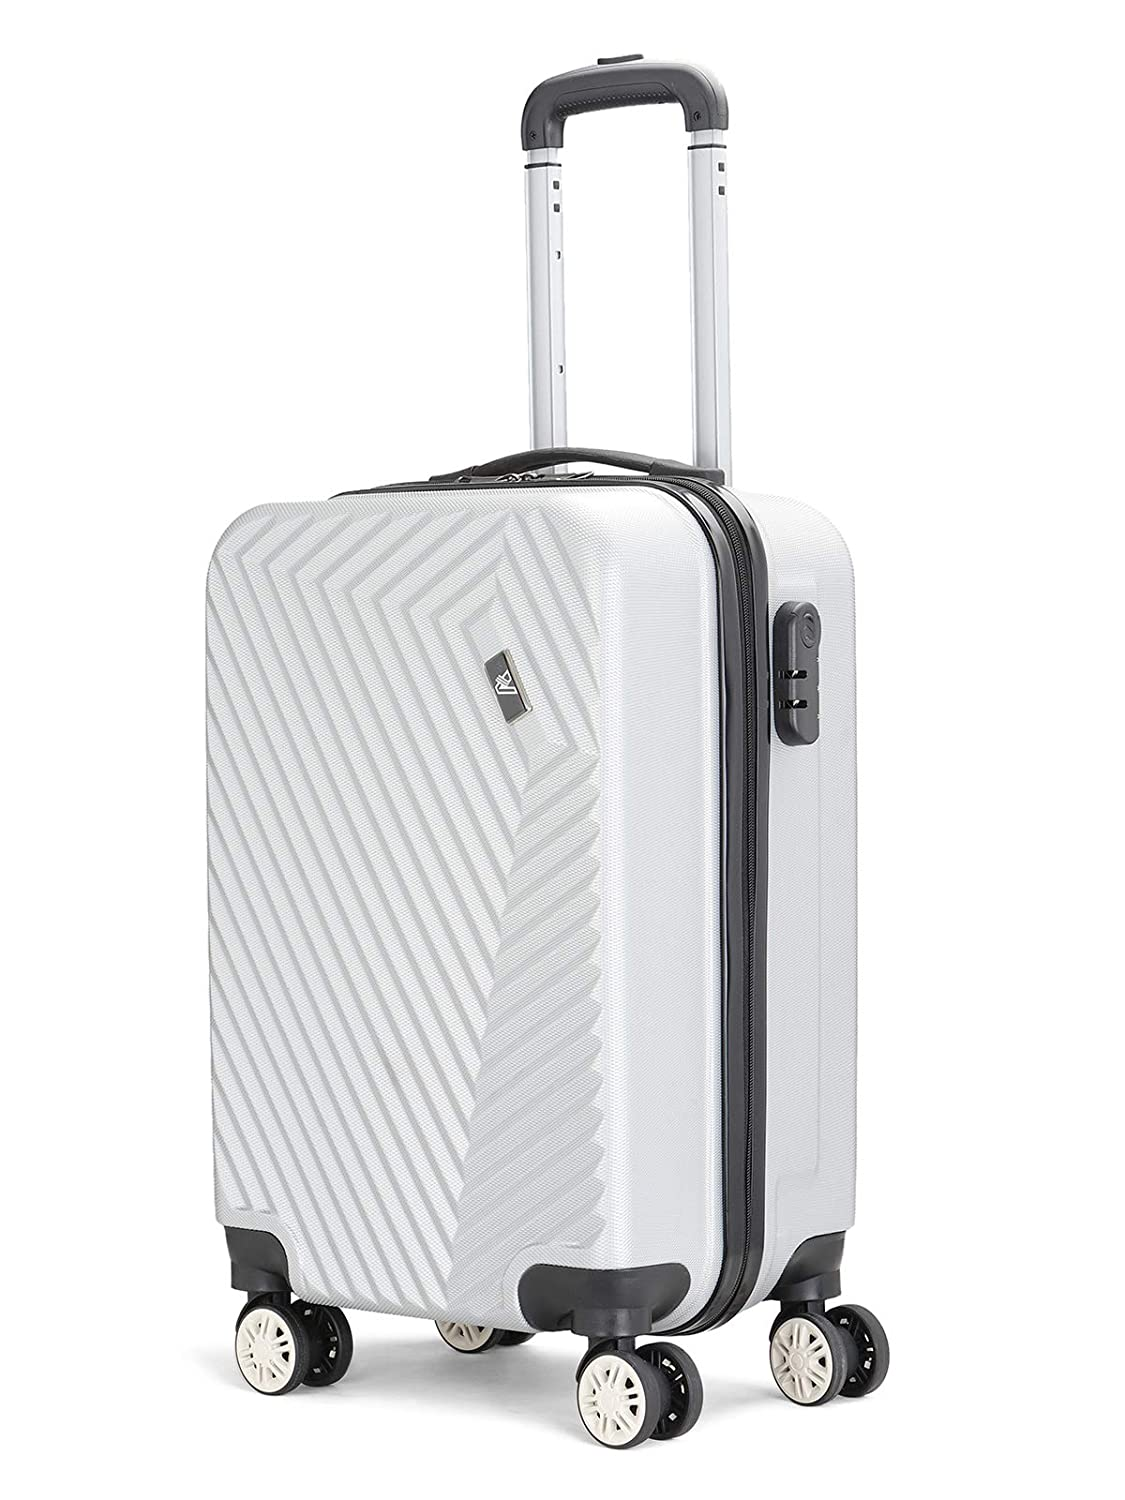 56 cms Cabin/Carry-on 8 Wheels Hard Suitcase Spinner Luggage